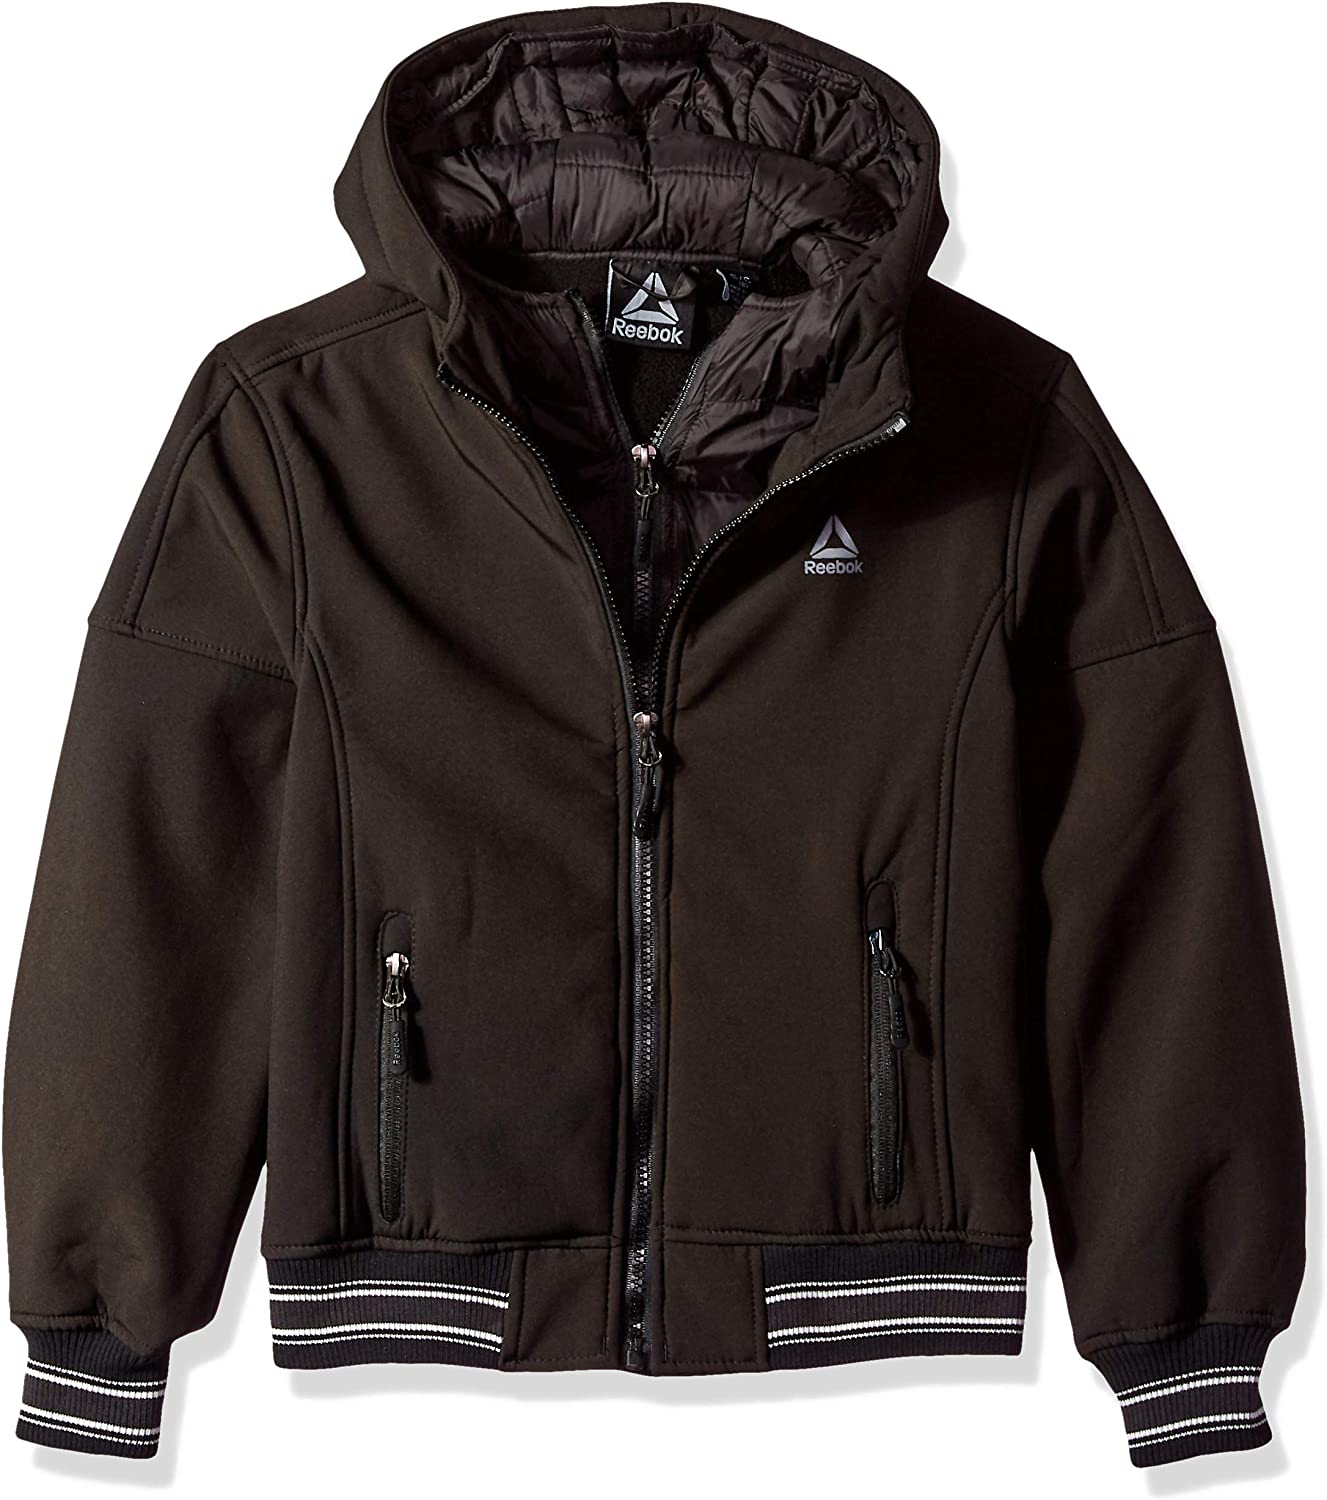 Reebok All items free shipping Boys' Active Vestee Ranking TOP9 with Hem Striped Jacket